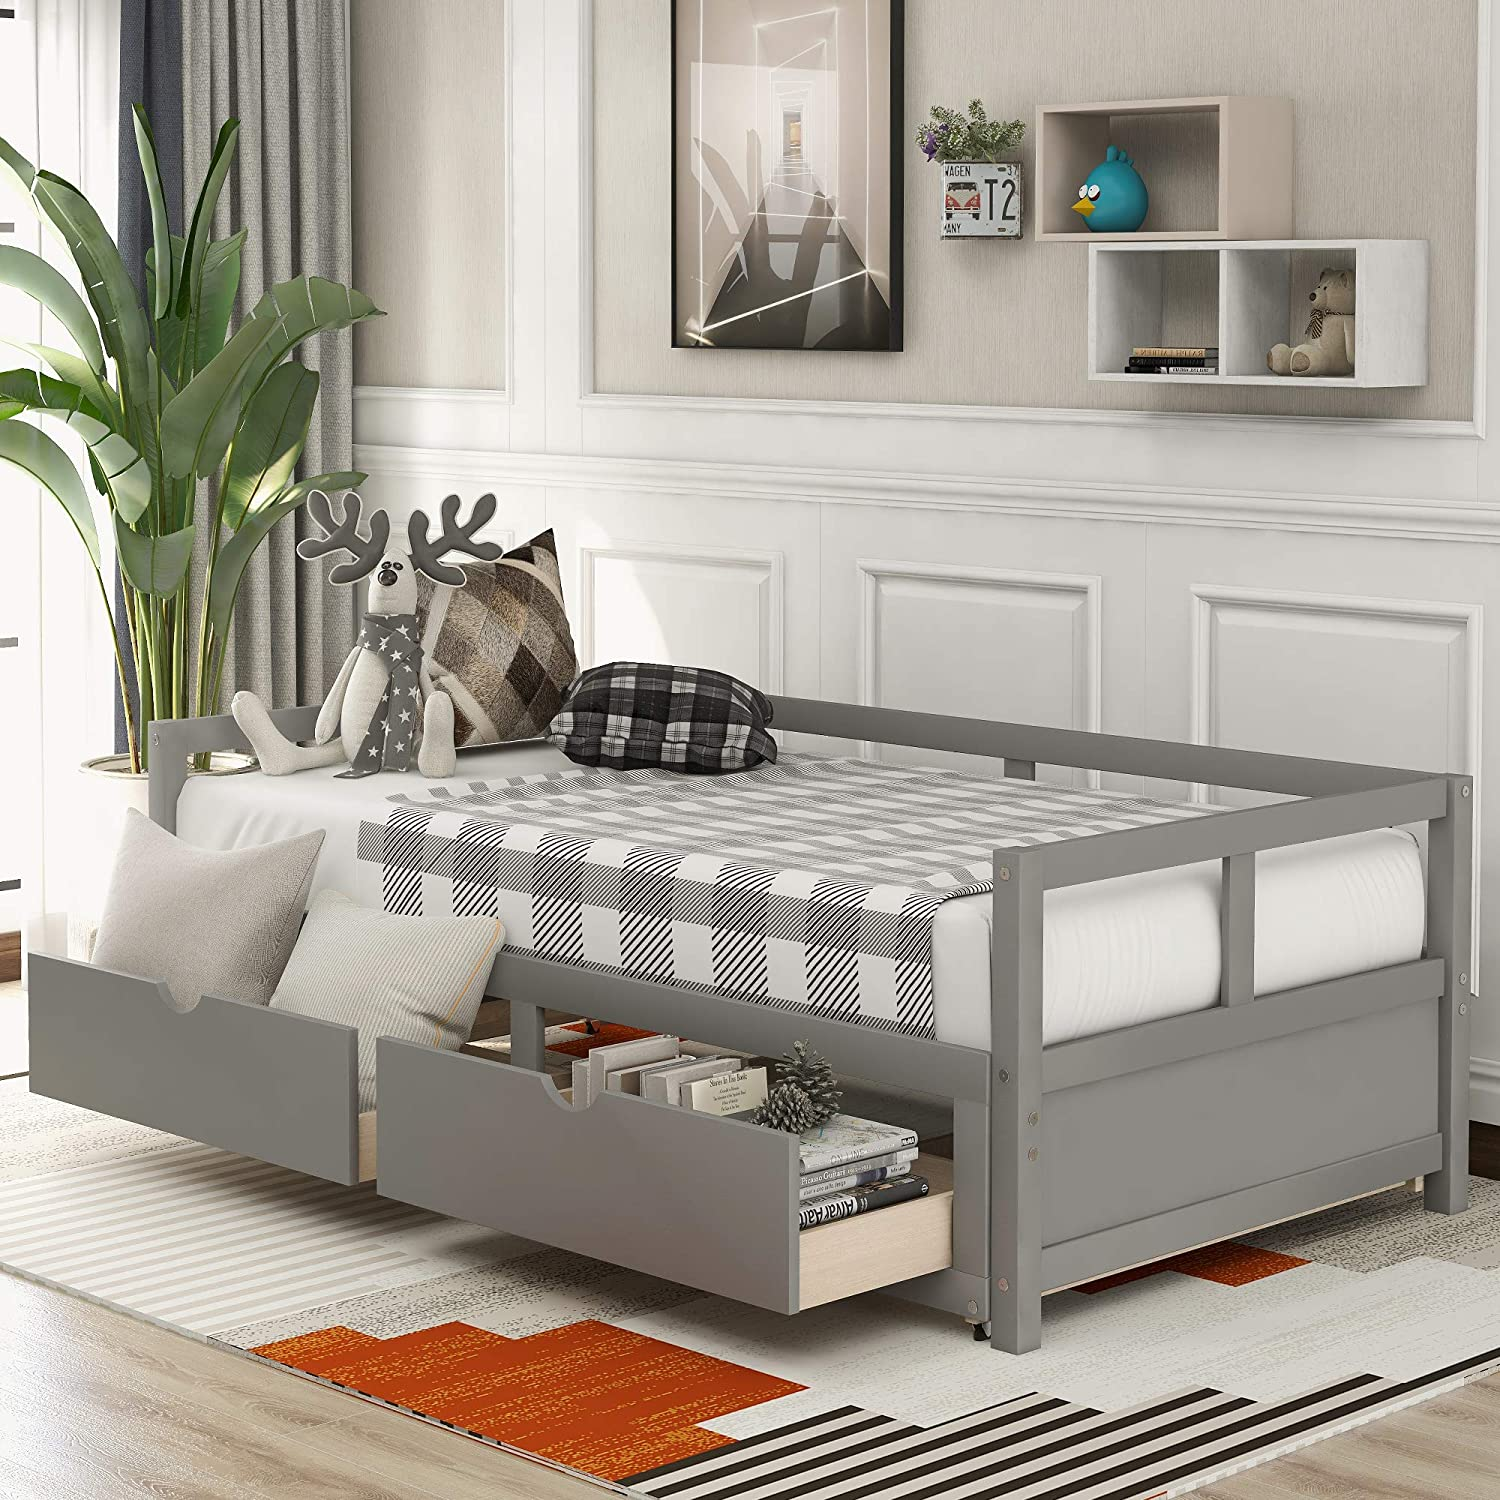 Extendable Albuquerque Mall Daybed with 2 Storage and Slats Drawers Wooden Suppor Special price for a limited time